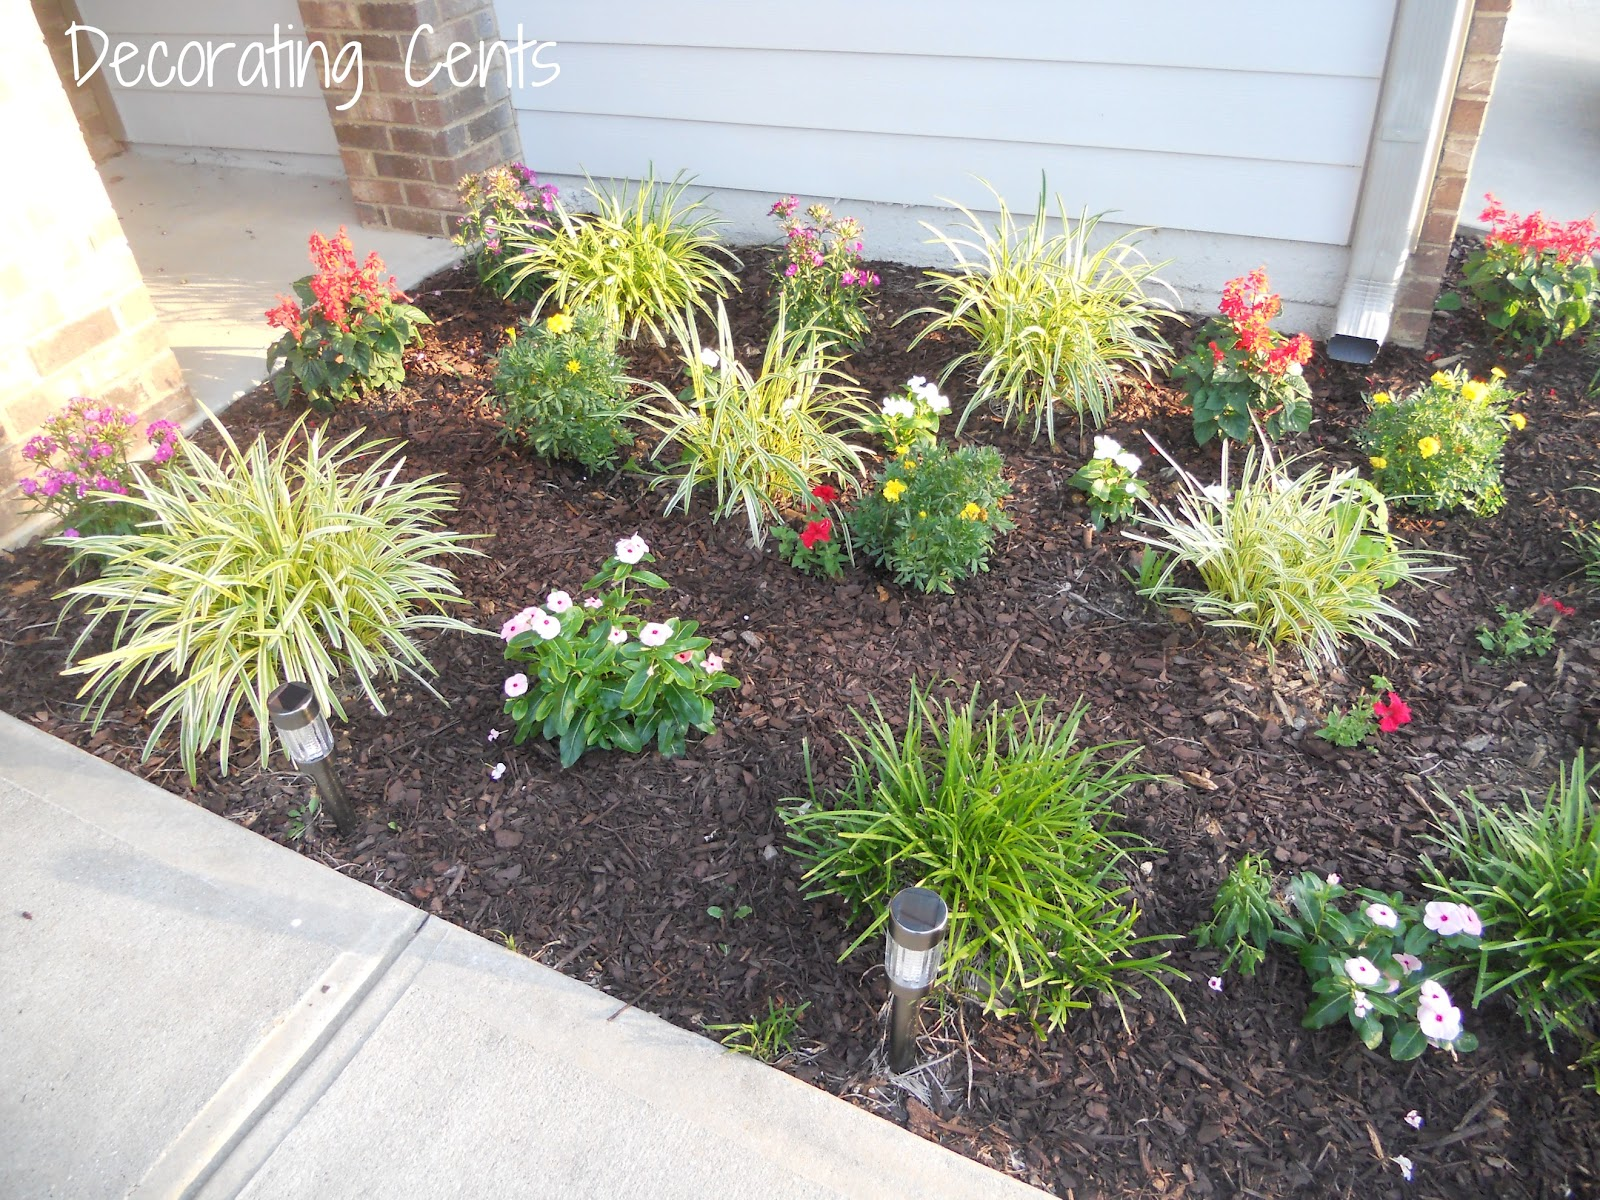 Decorating Cents Curb Appeal